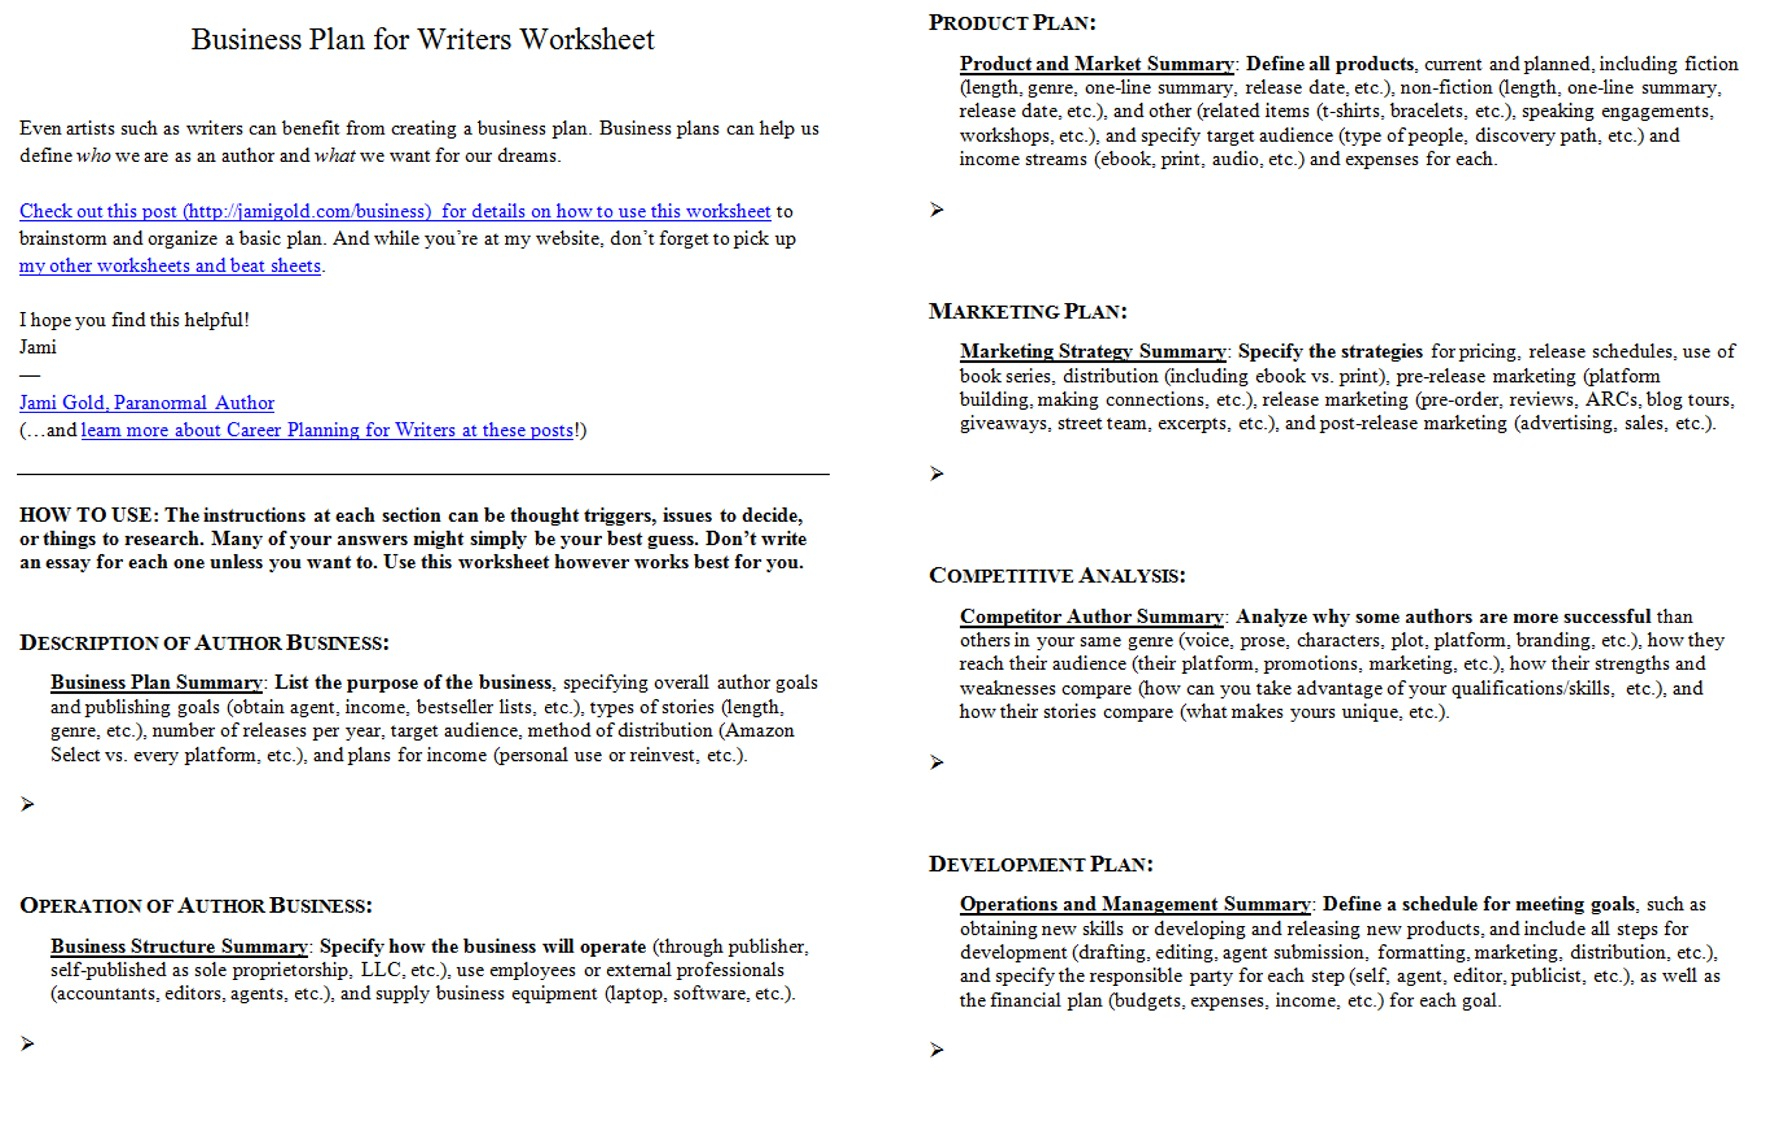 Weirdmailus  Unusual Worksheets For Writers  Jami Gold Paranormal Author With Hot Screen Shot Of Both Pages Of The Business Plan For Writers Worksheet With Endearing Abc Order Worksheets Also Surface Area Of Prisms And Pyramids Worksheet In Addition The Gas Laws Worksheet And Exponential Functions Worksheet As Well As Balancing Act Worksheet Additionally Forms Of Energy Worksheet From Jamigoldcom With Weirdmailus  Hot Worksheets For Writers  Jami Gold Paranormal Author With Endearing Screen Shot Of Both Pages Of The Business Plan For Writers Worksheet And Unusual Abc Order Worksheets Also Surface Area Of Prisms And Pyramids Worksheet In Addition The Gas Laws Worksheet From Jamigoldcom